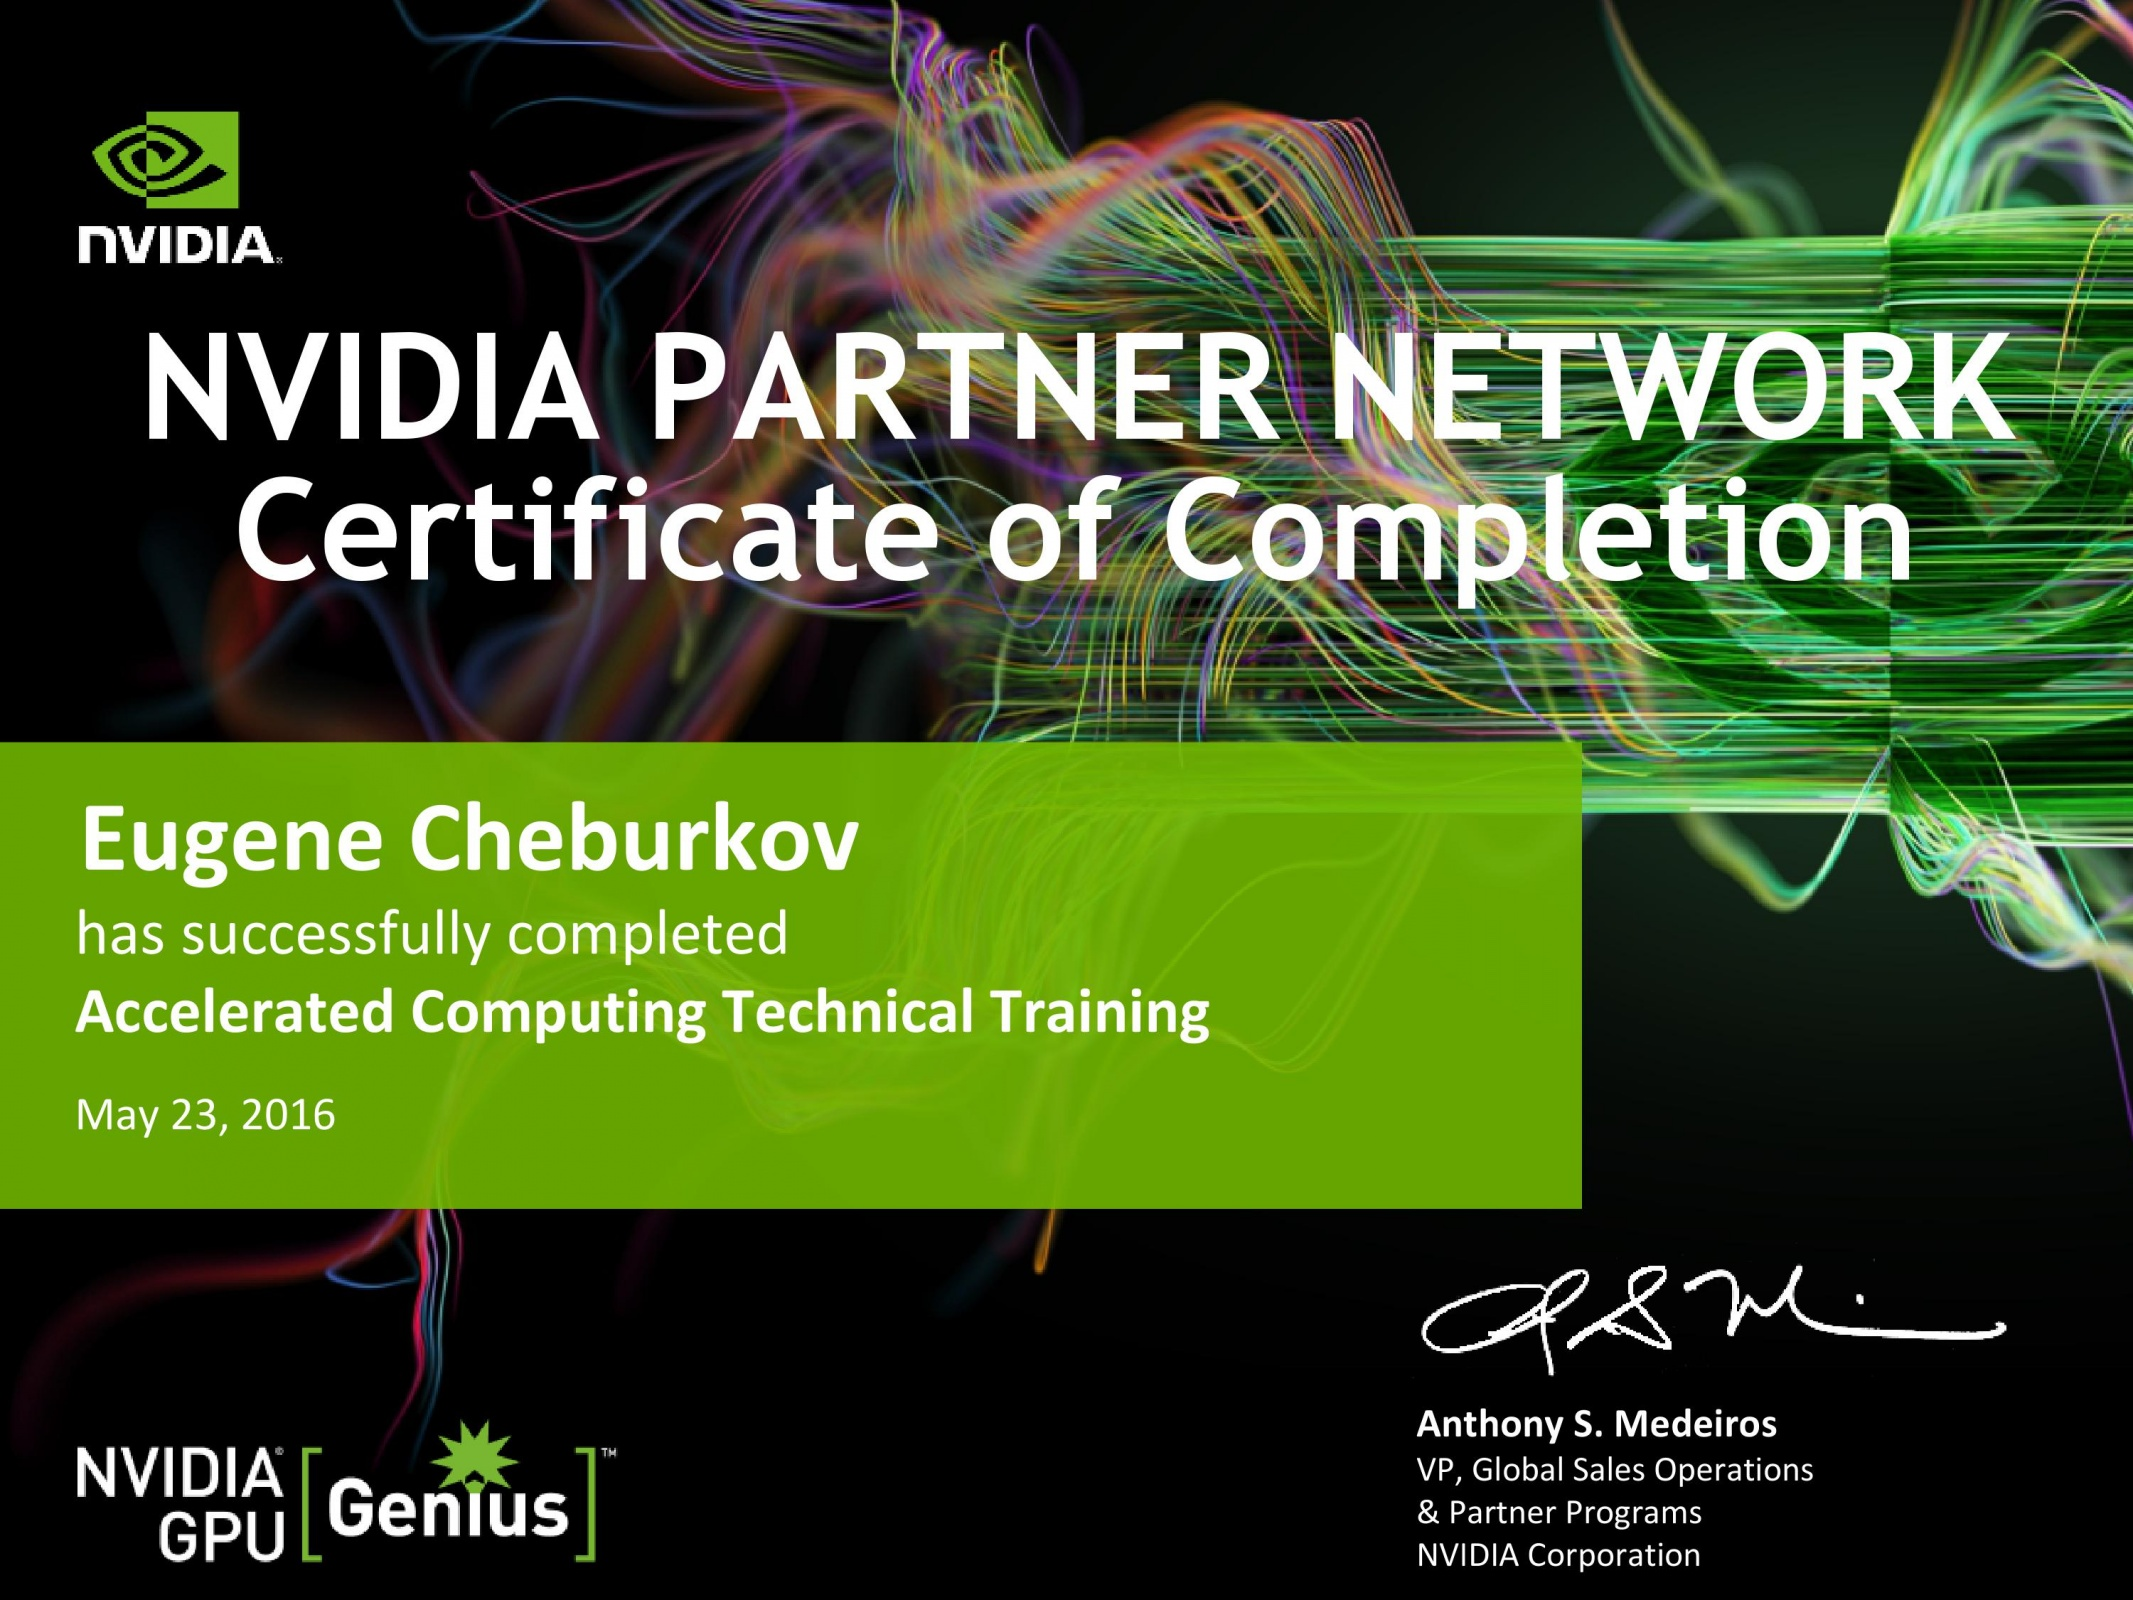 NVIDIA_accelerated_computing_cheburkov.jpg